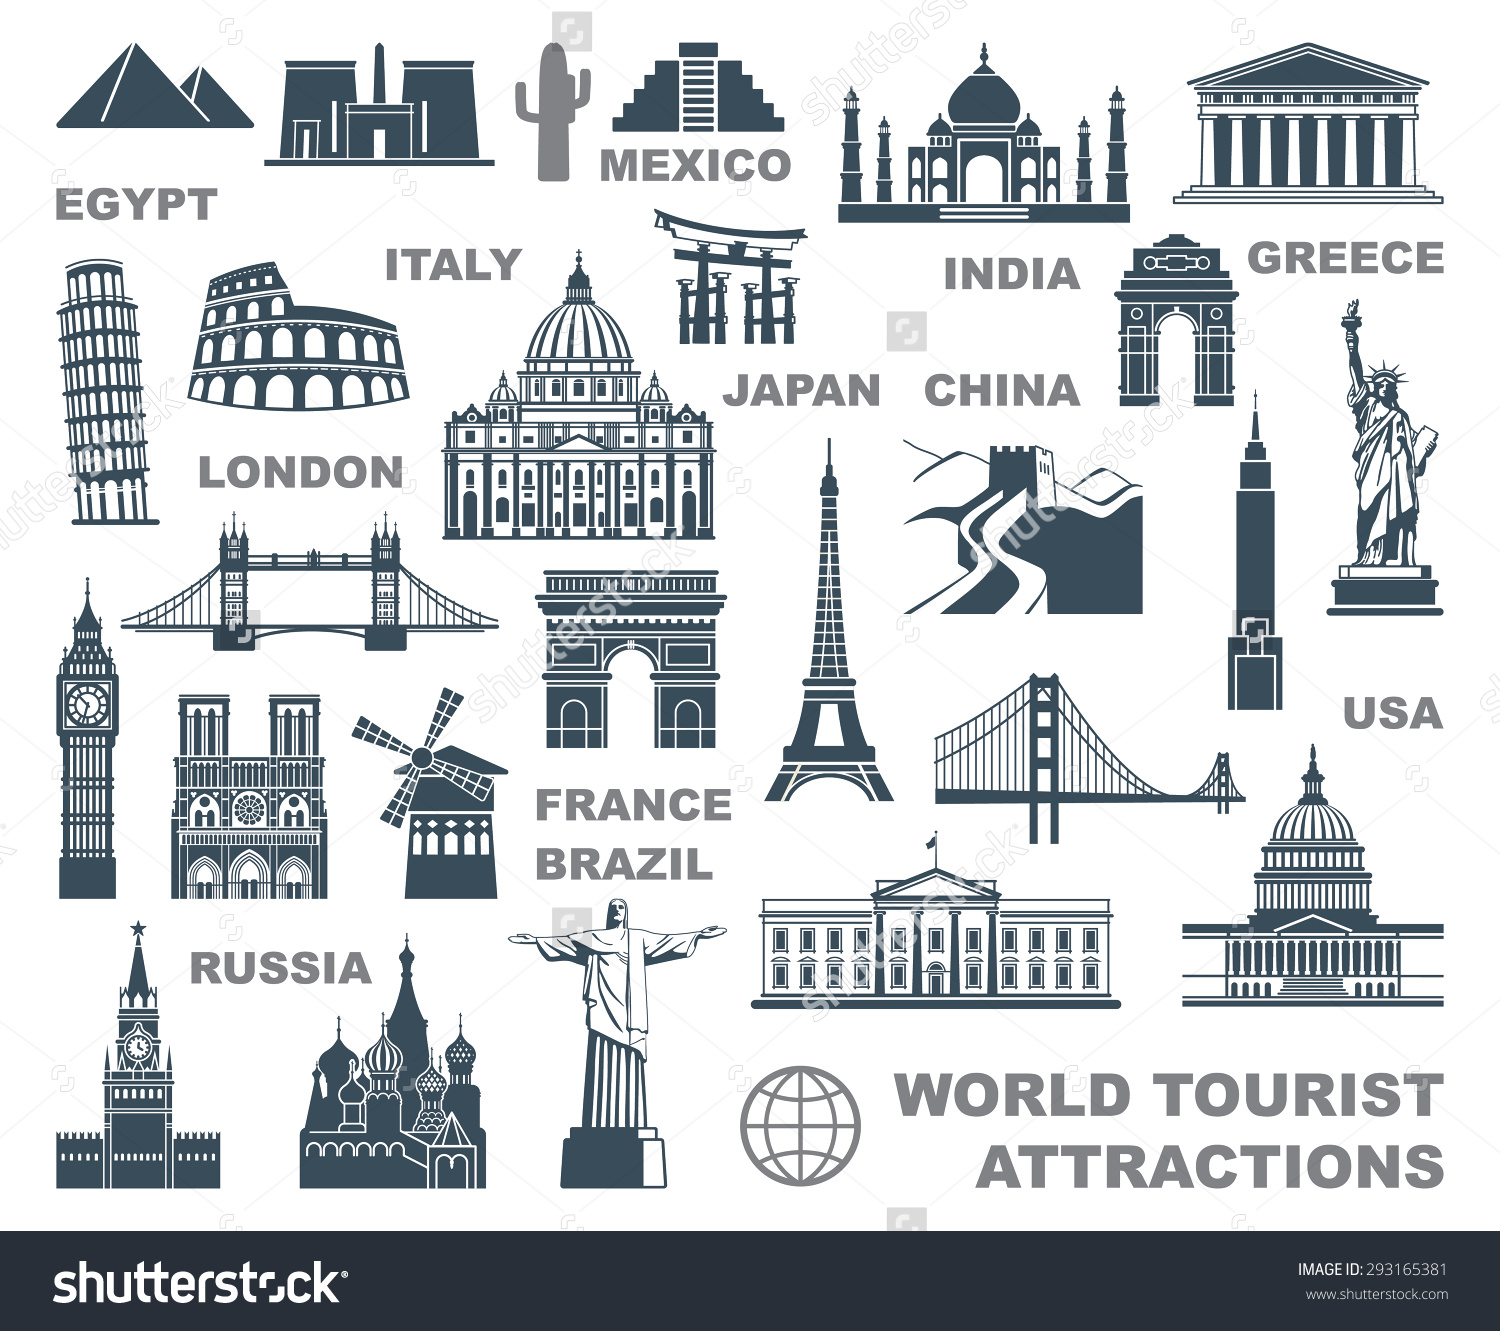 Icons World Tourist Attractions Stock Vector 293165381.